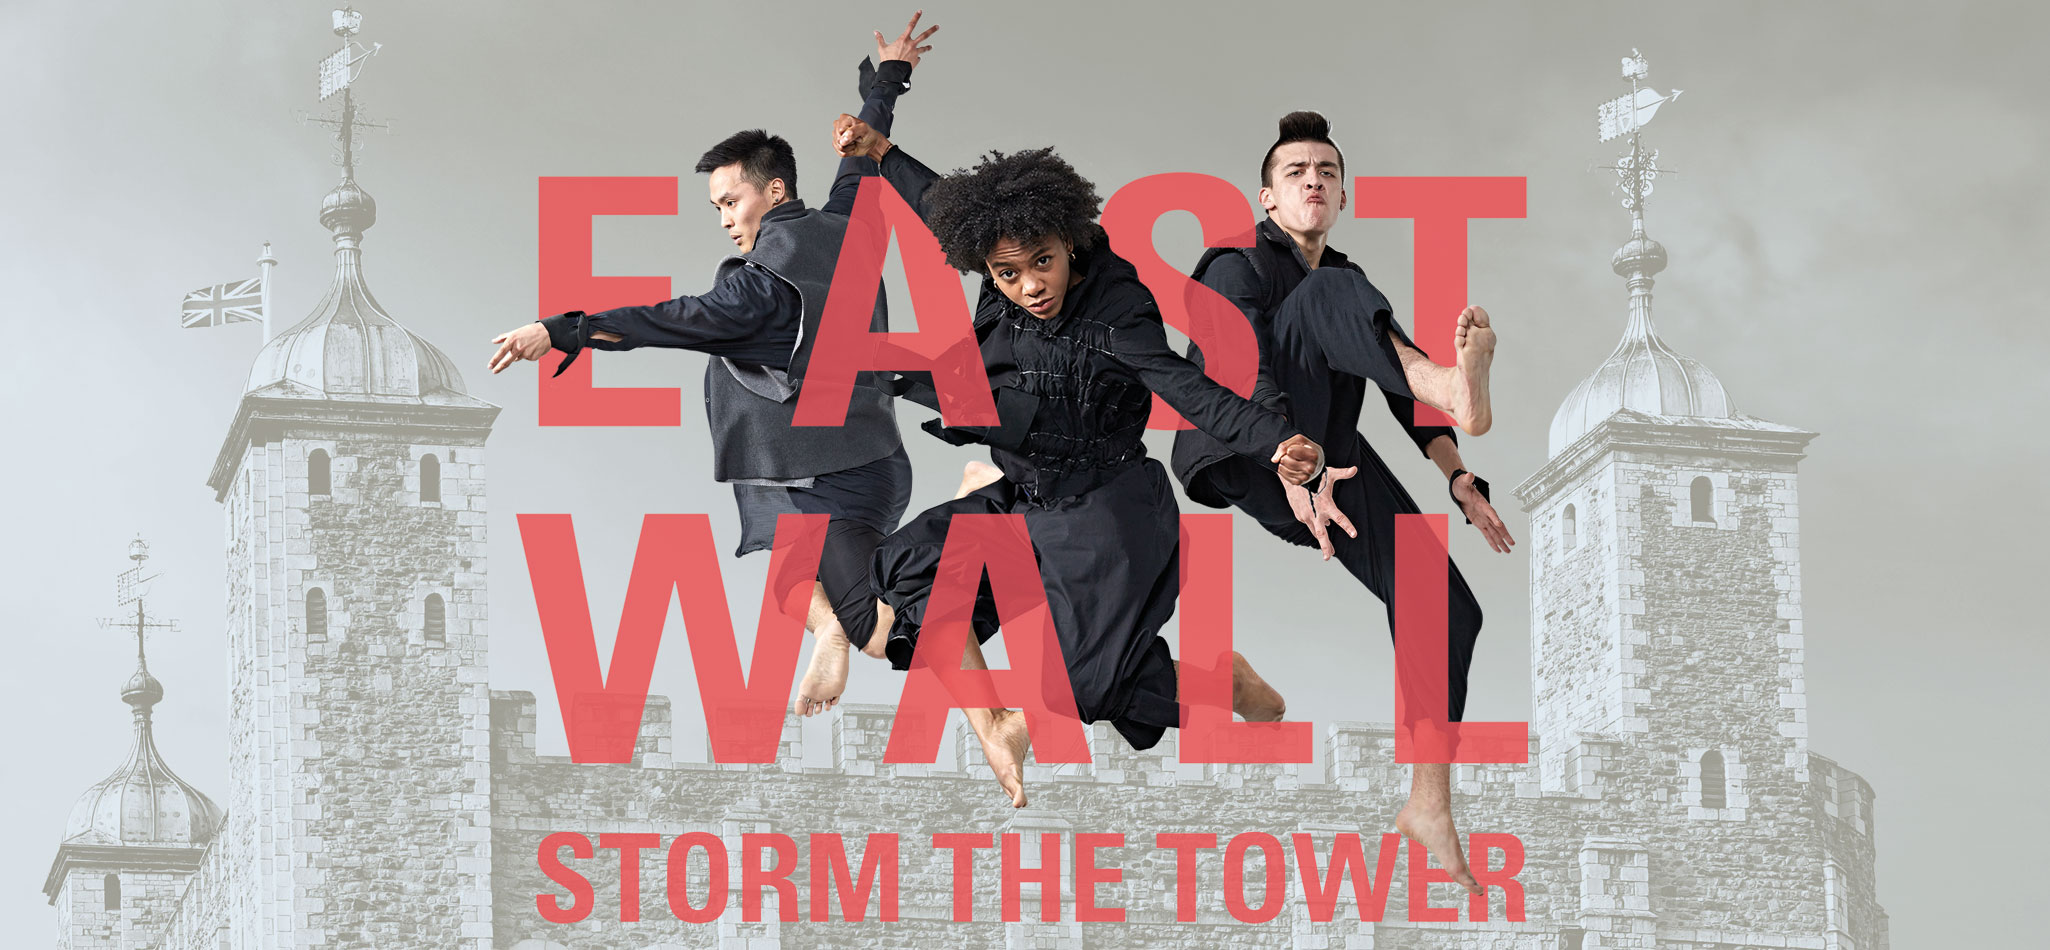 East Wall - Storm the Tower!